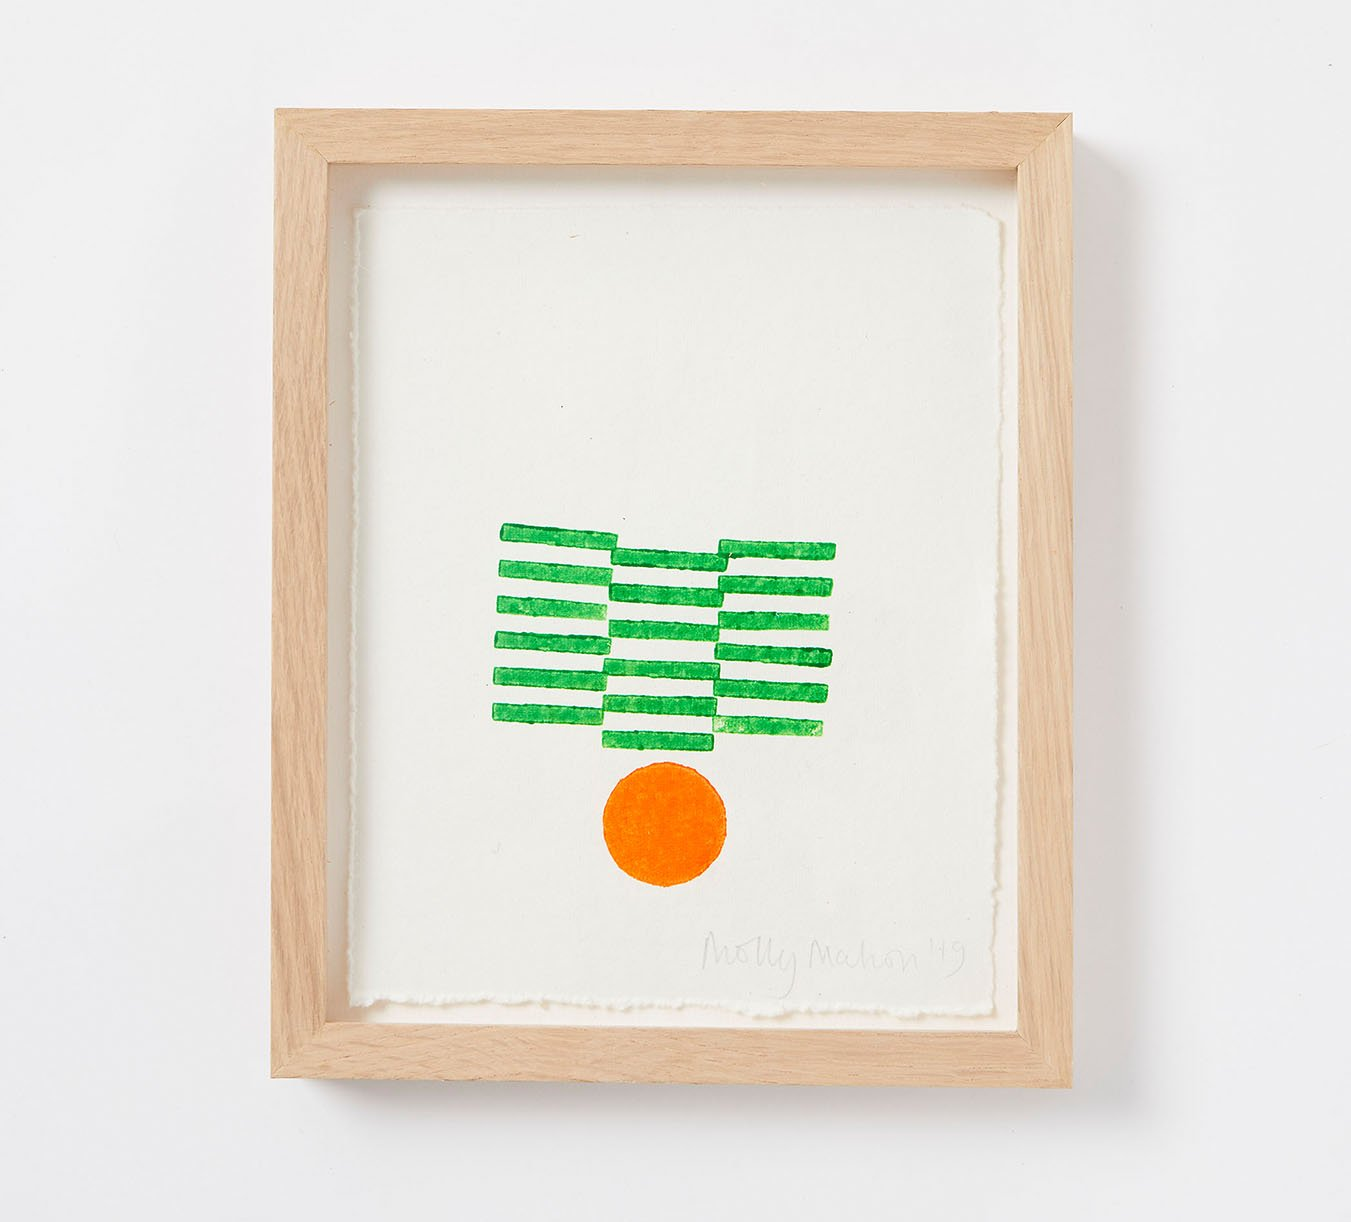 Framed - Cotton Paper Print - Fran - Green